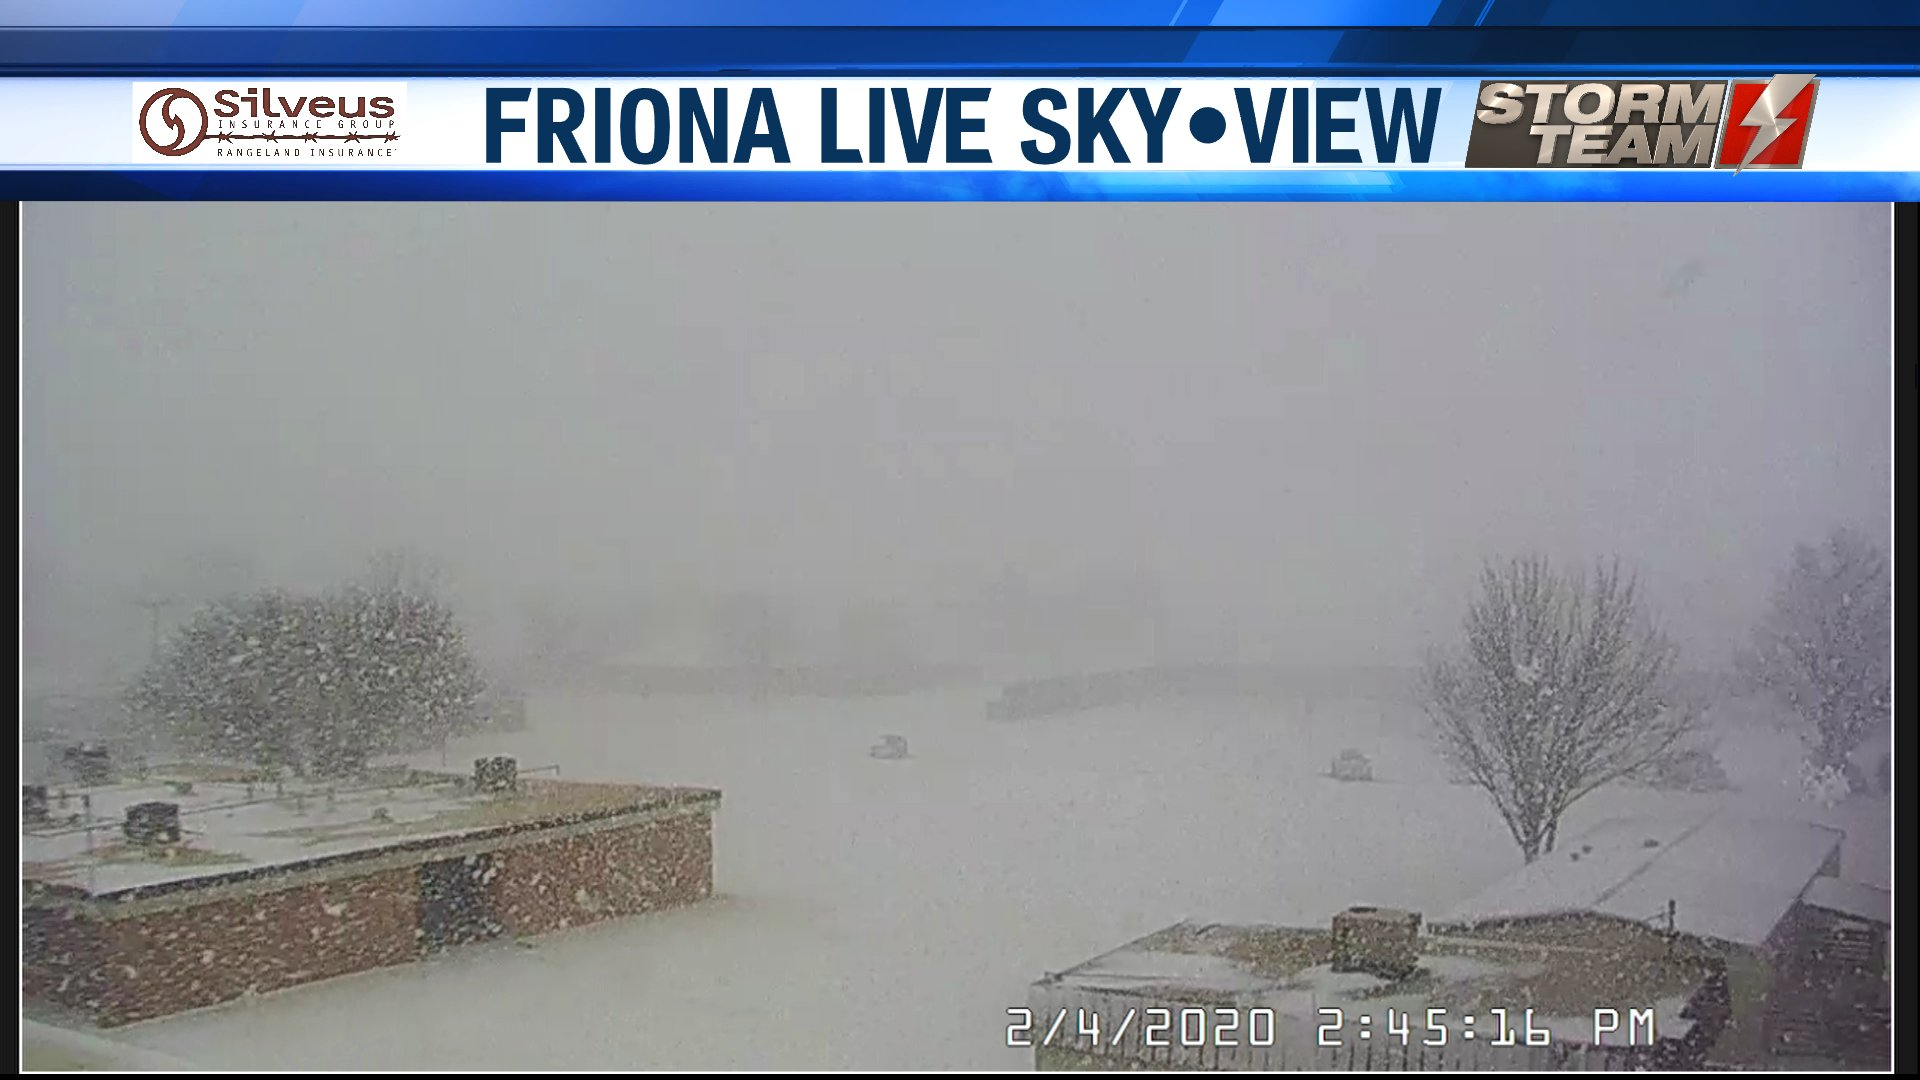 Snowy scene in Friona on Tuesday afternoon (4 February 2020). The image is courtesy of KVII.